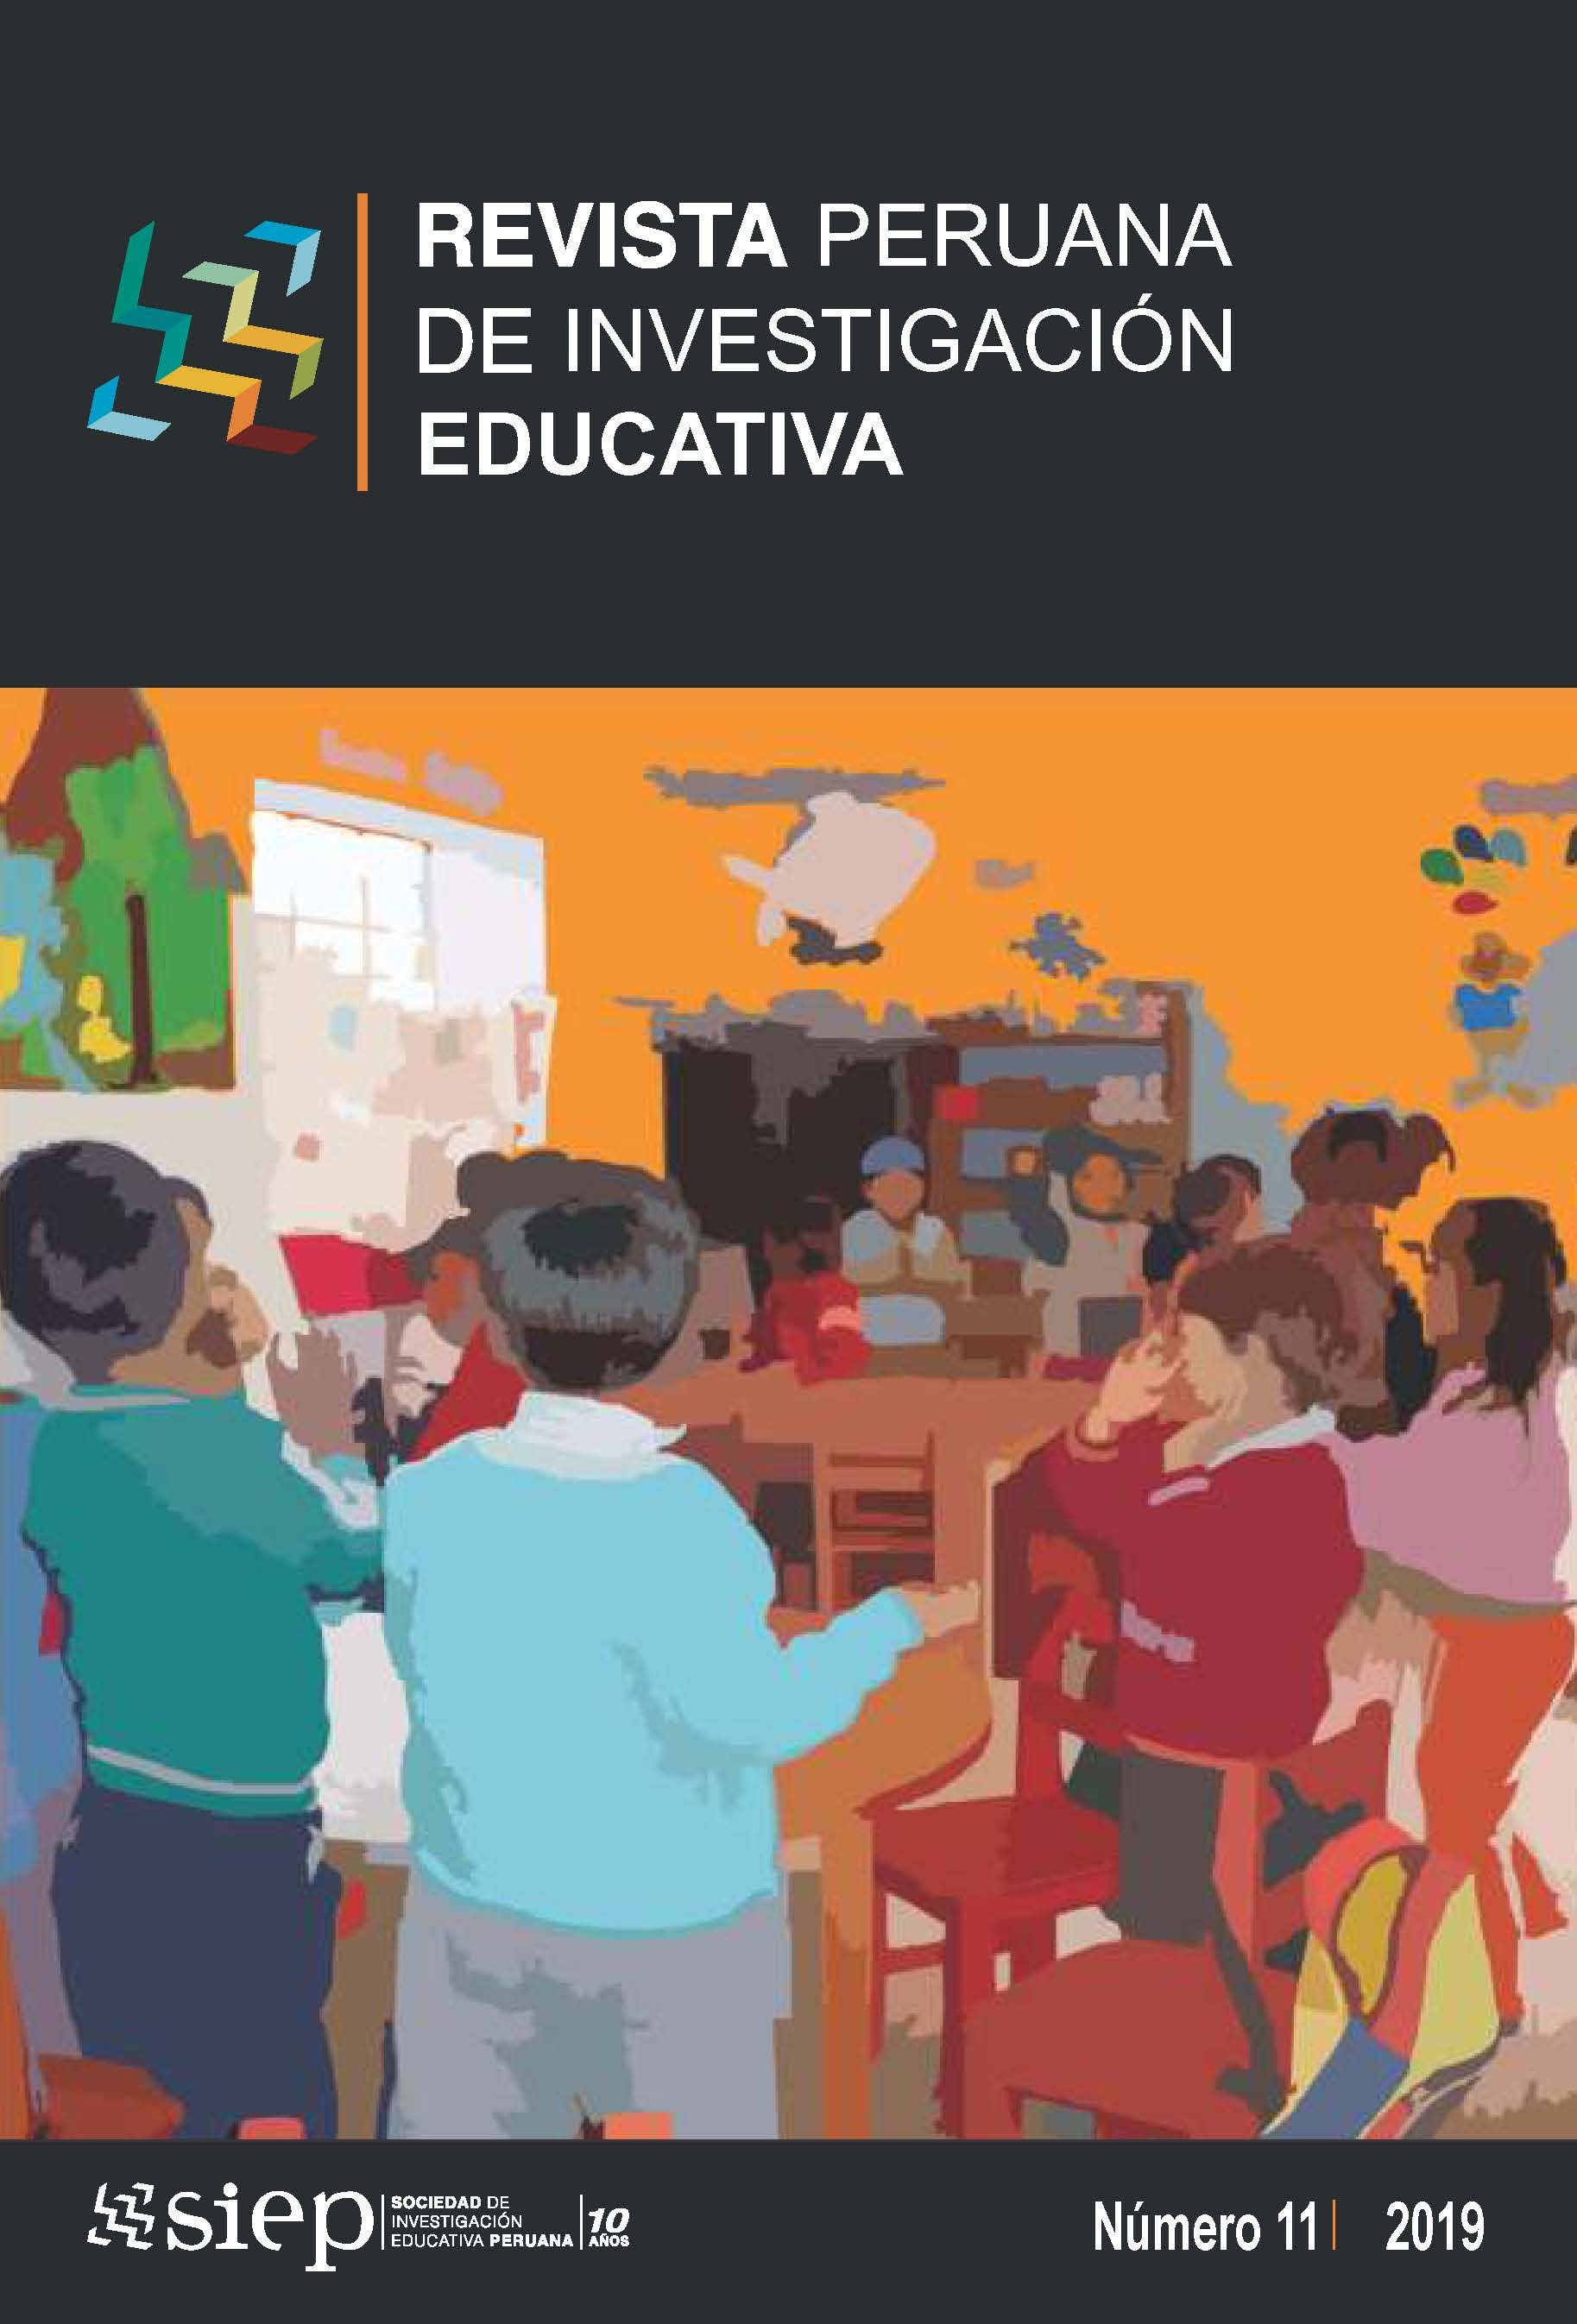 Revista Peruana de Investigación Educativa Vol.11, No11, 2019